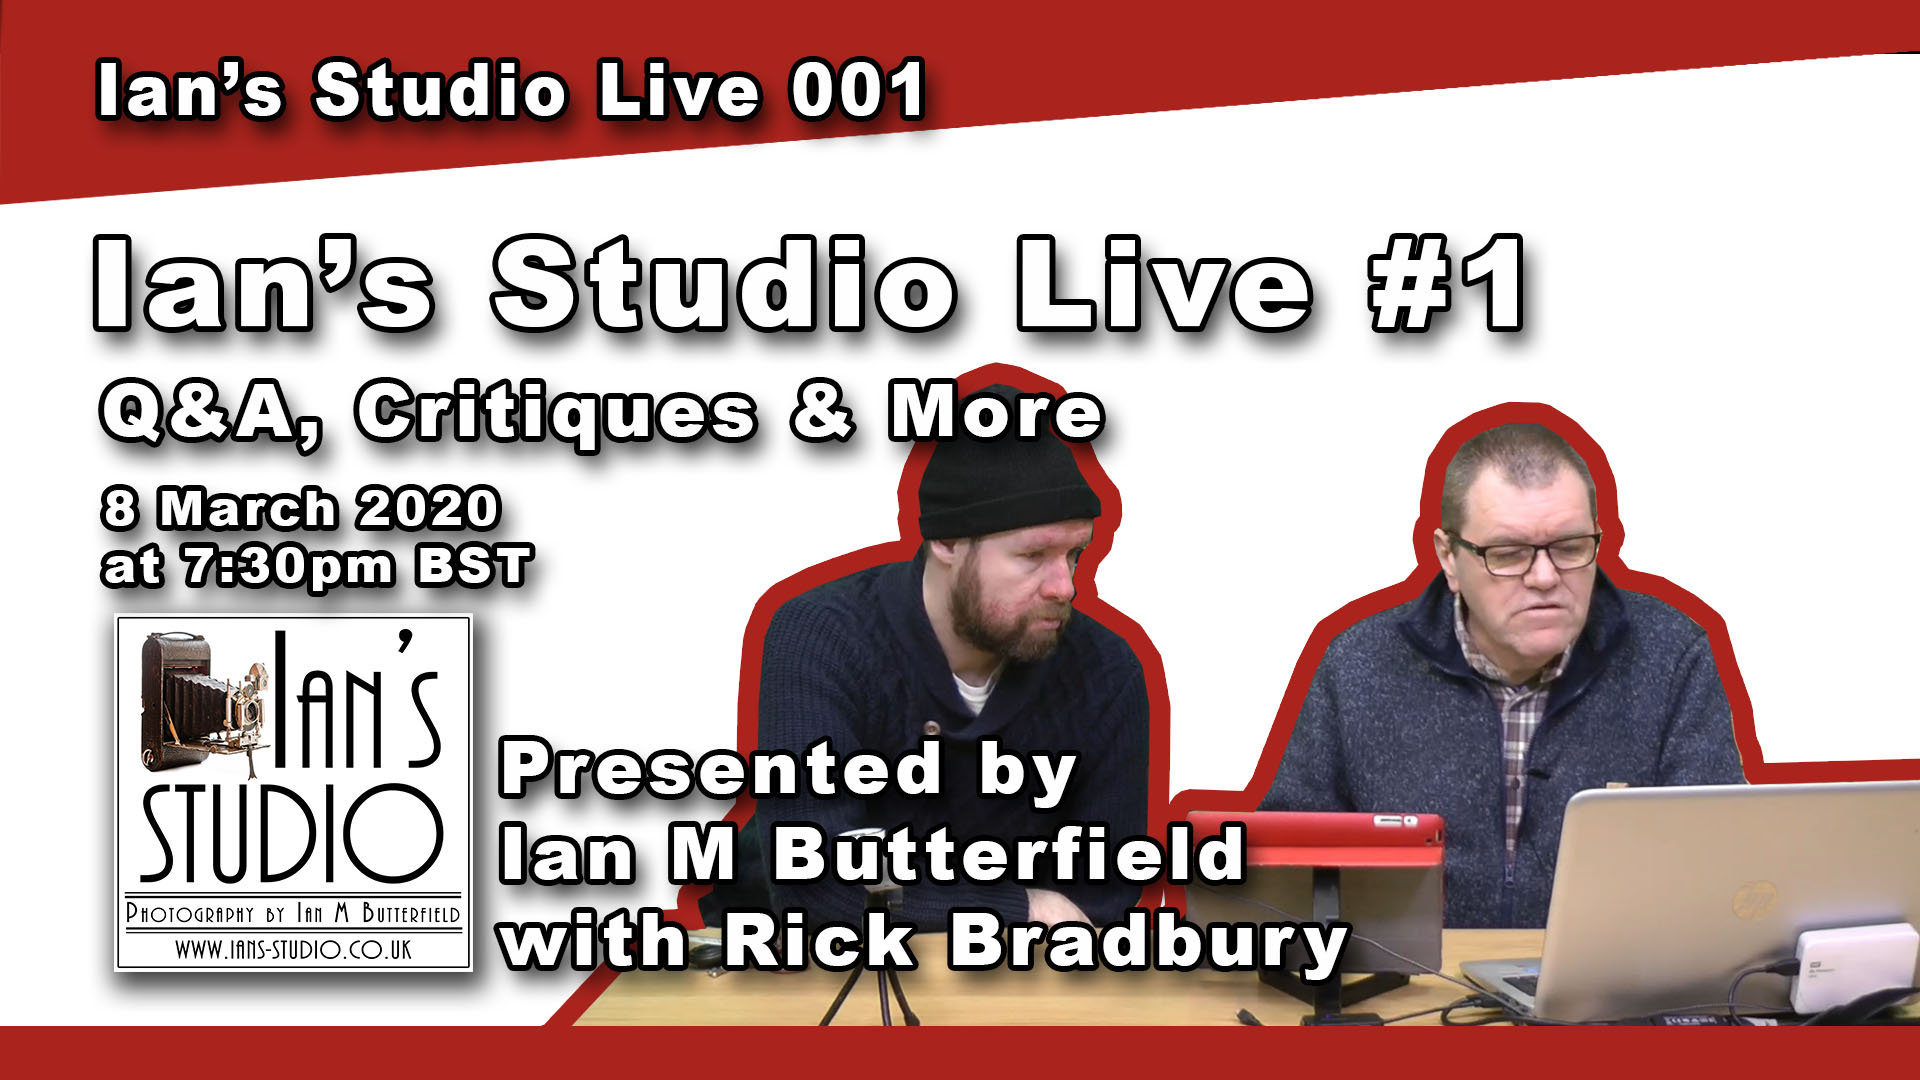 8 MAR 2020 LIVESTREAM FULL REPLAY: Ian's Studio Live #001 – Q&A, Critiques, & More